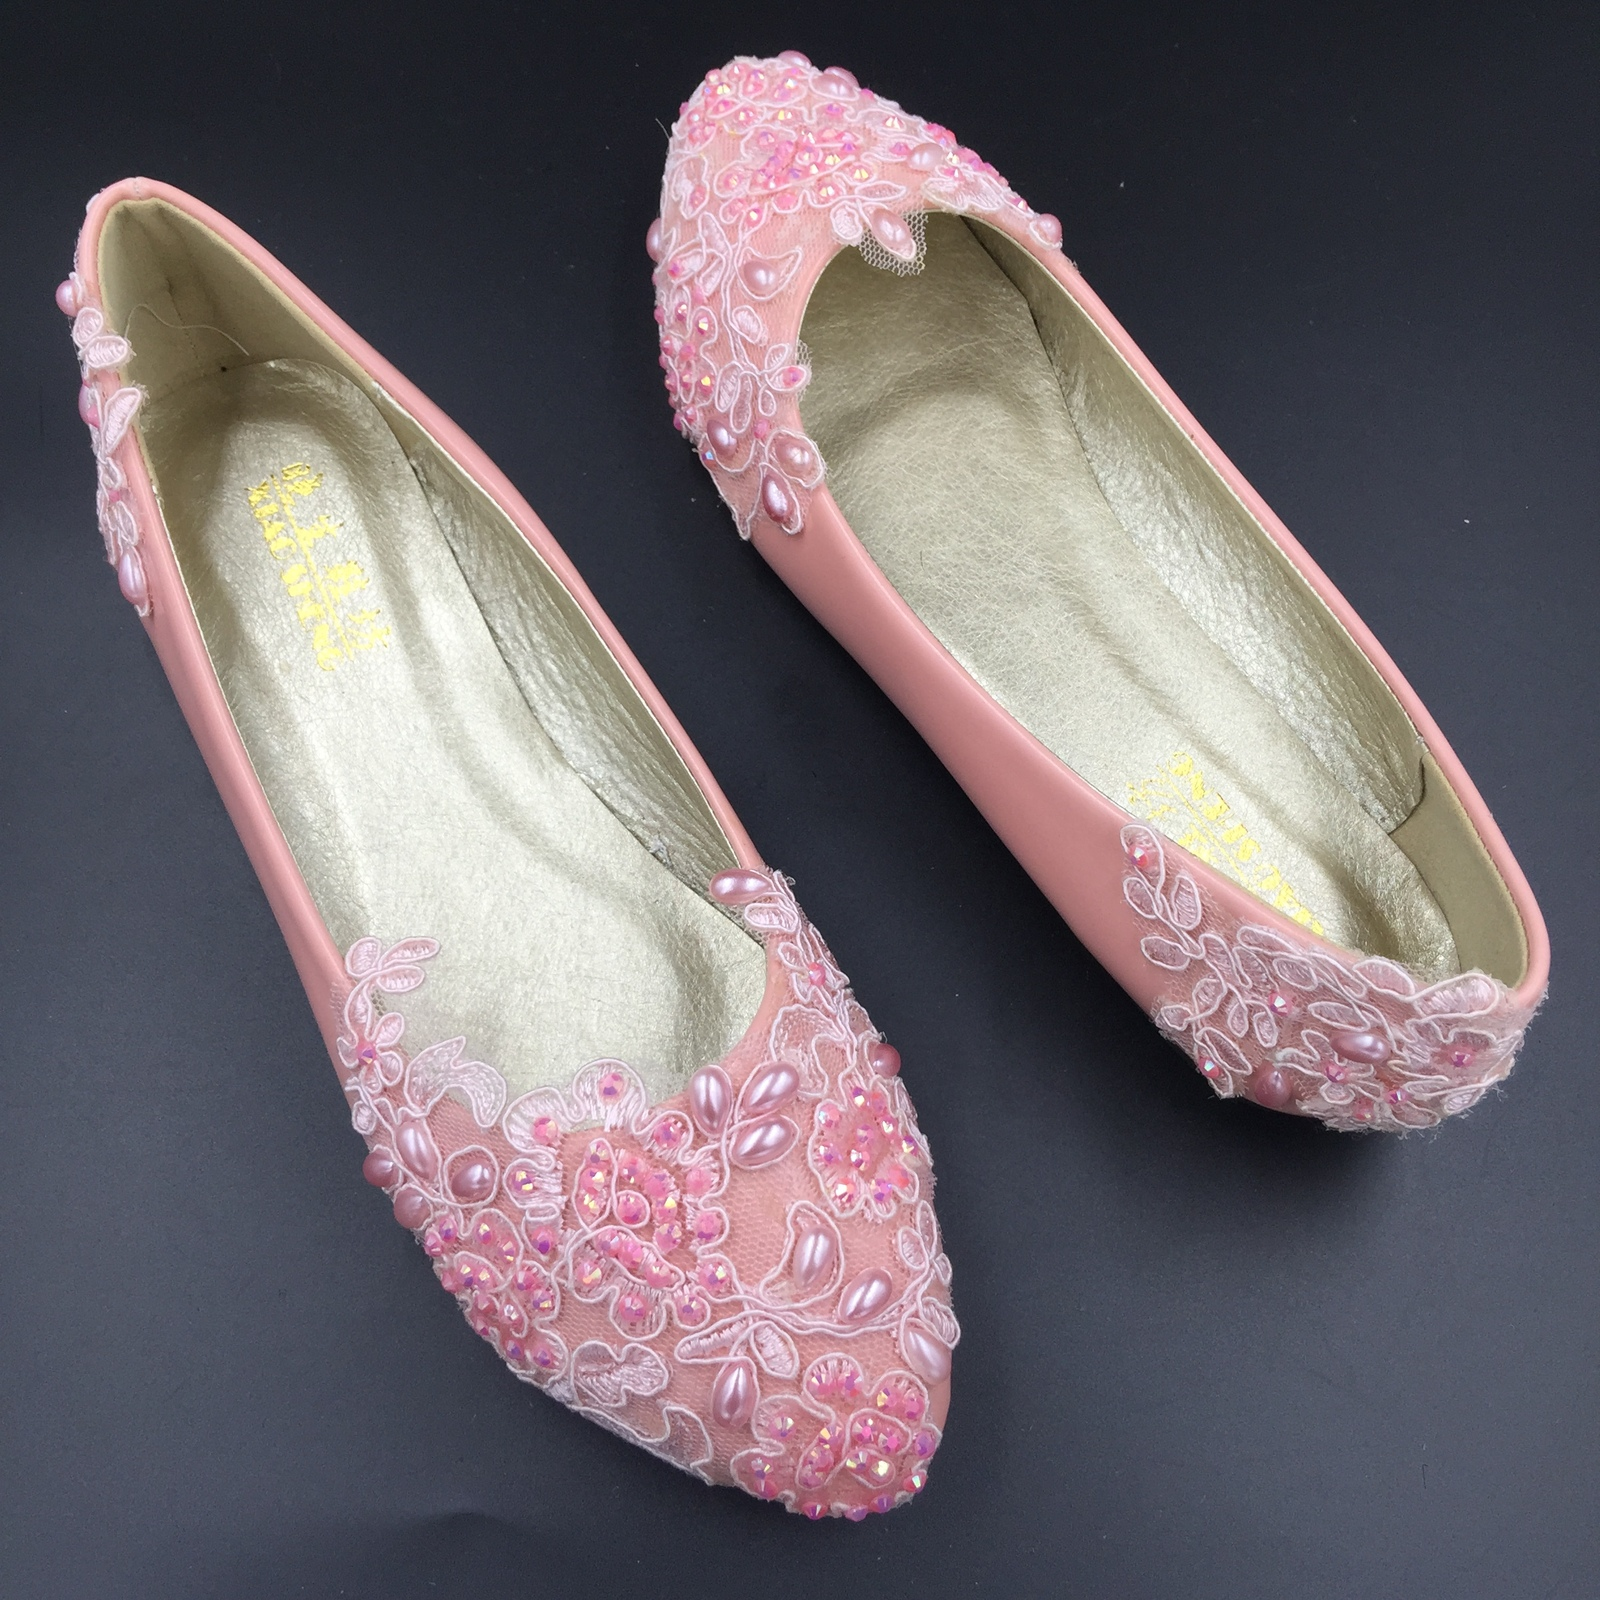 Primary image for Pink Wedding Slipper Shoes,Wedding Shoe for Bridal,Pink Bridal flats shoes